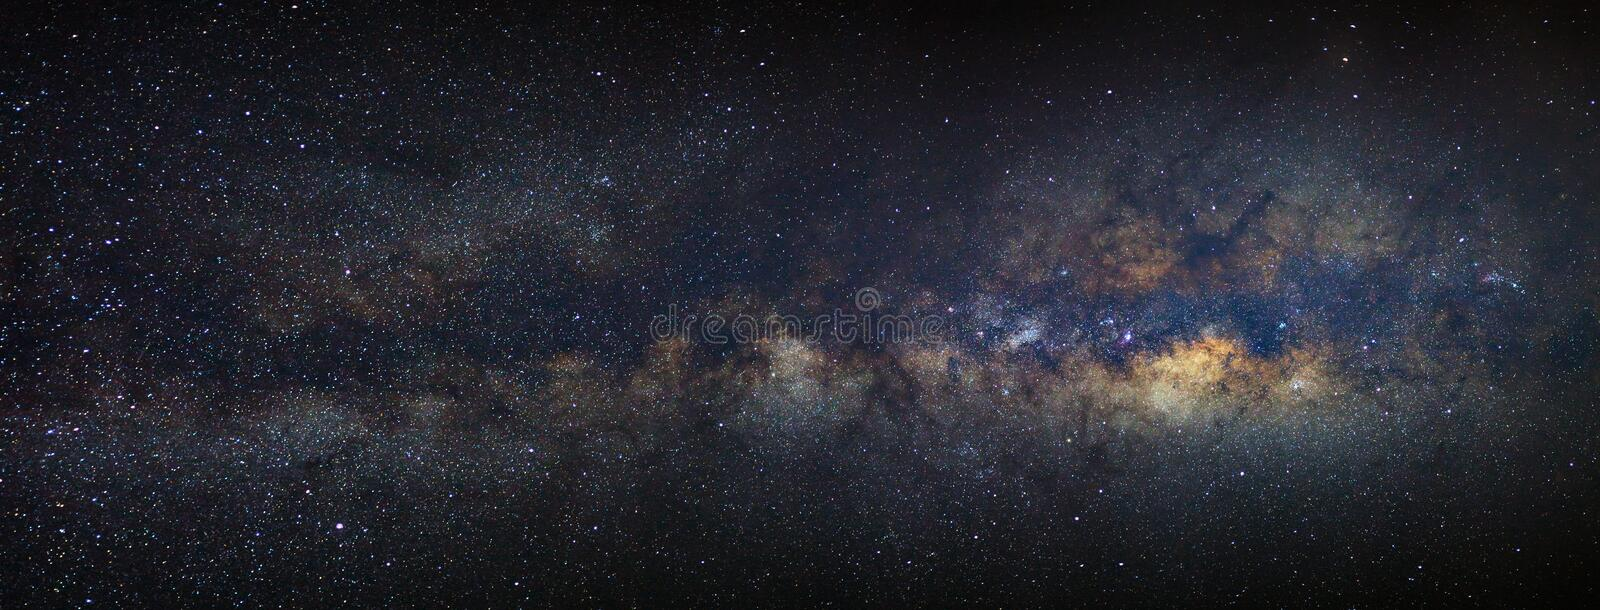 Panorama Milky way galaxy with stars and space dust in the universe royalty free stock photo